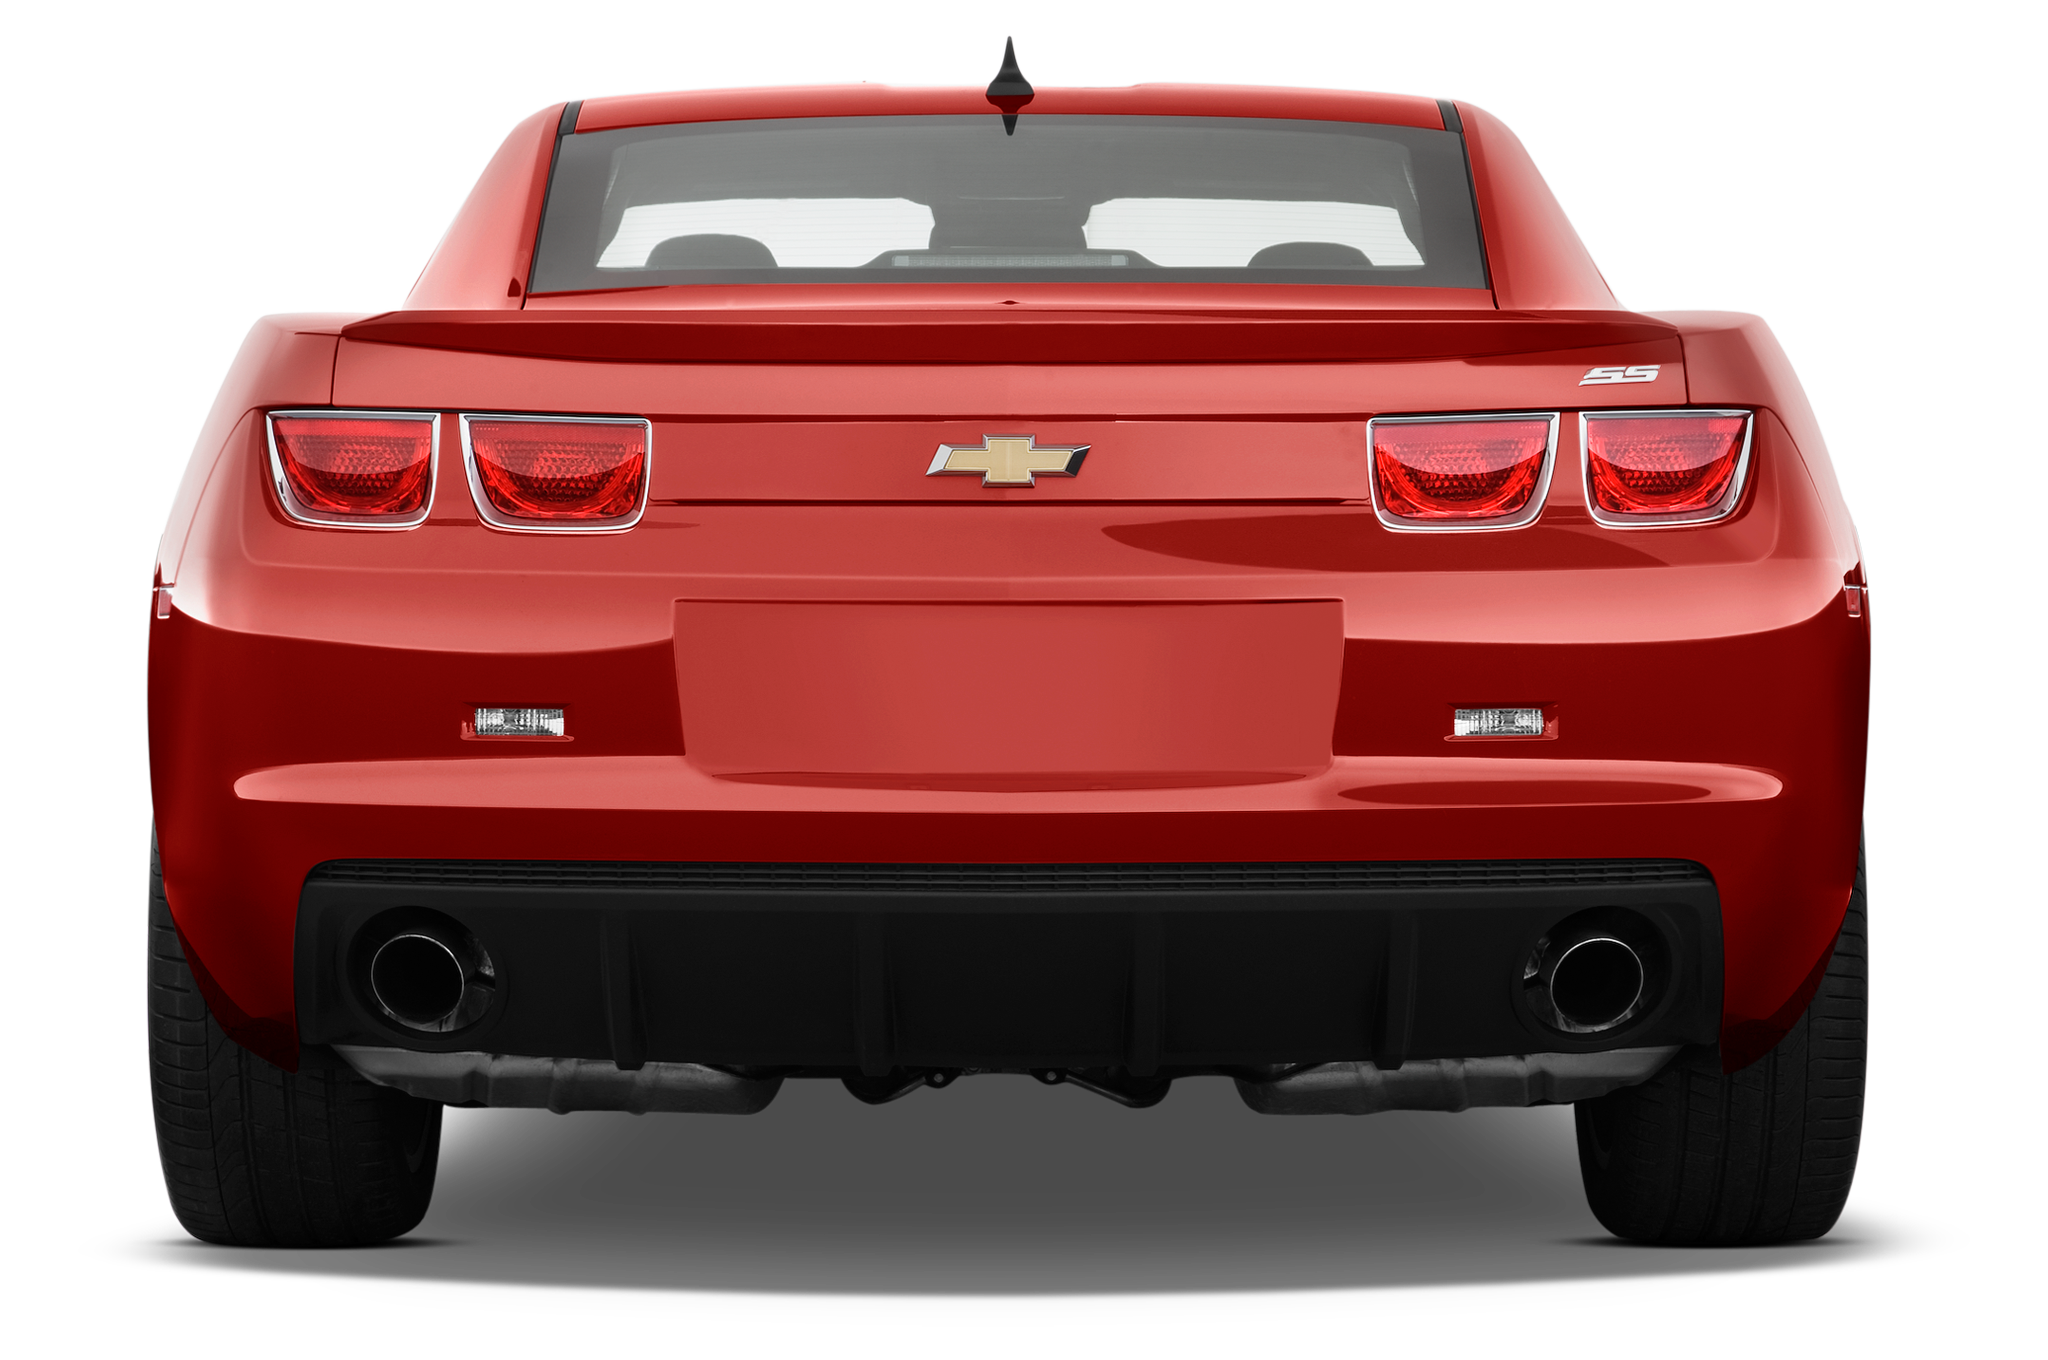 Chevrolet Camaro Ss Coupe Rear View